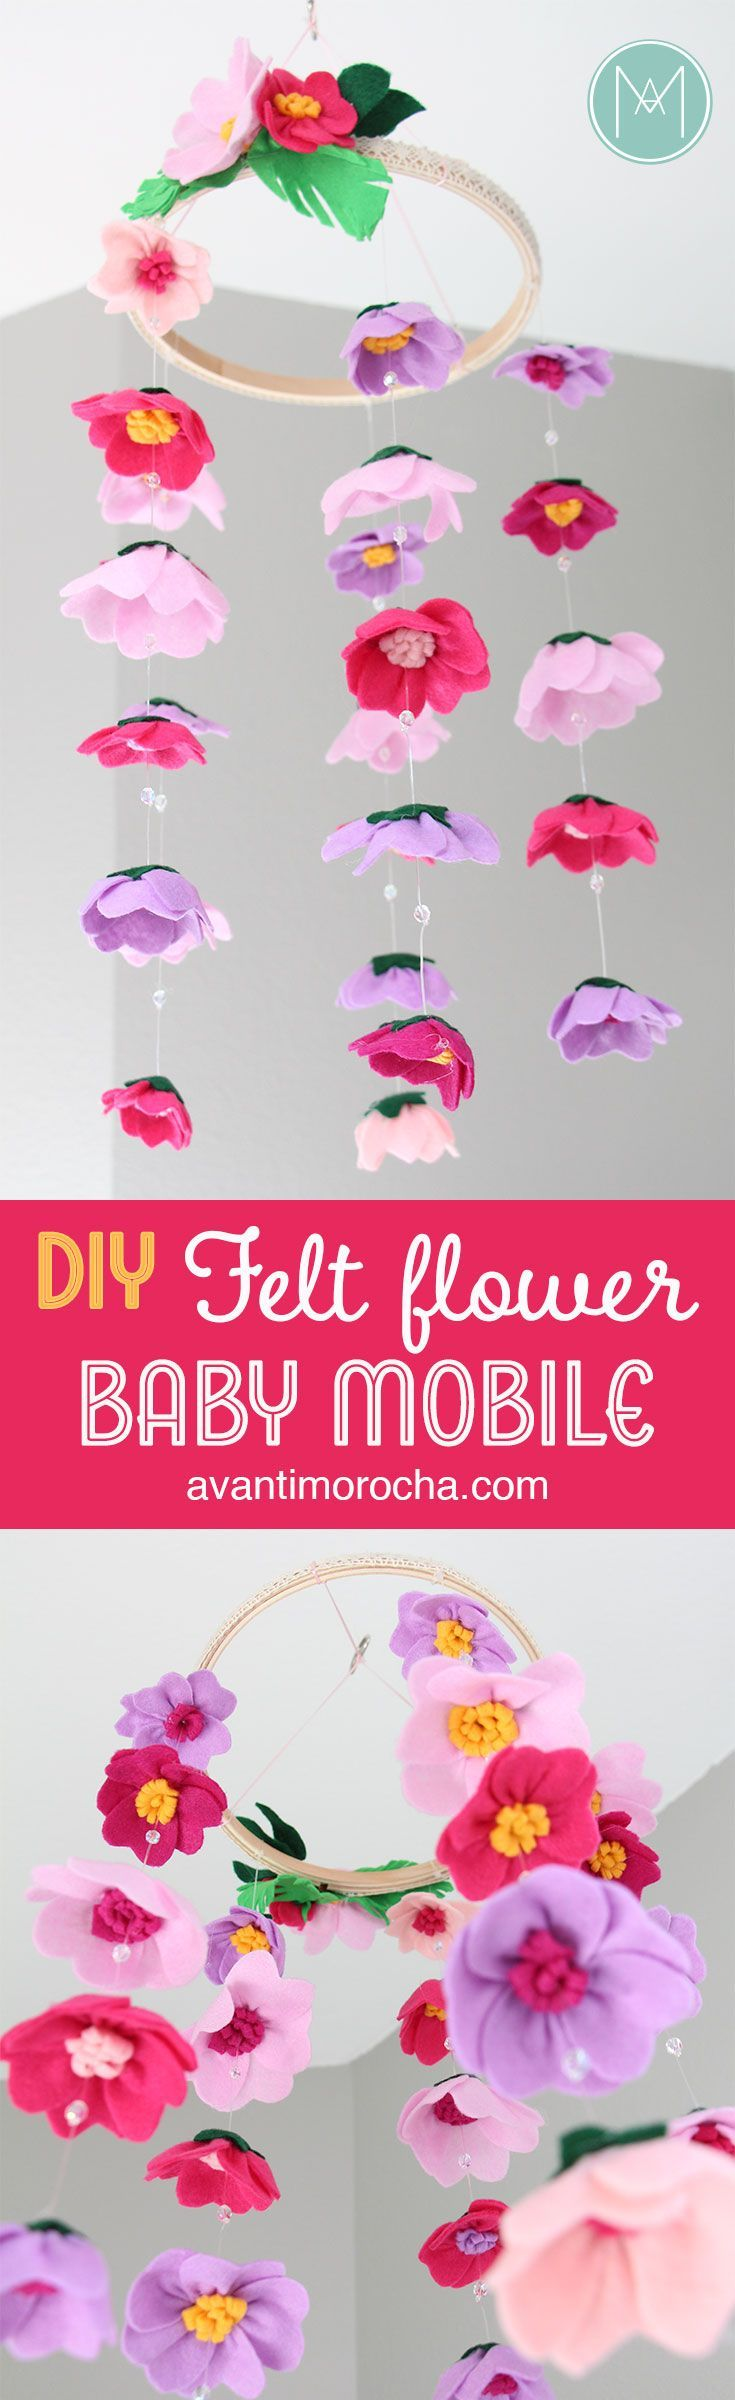 DIY Felt Flower Baby Mobile #feltflowertemplate DIY Felt Flower Baby Mobile | Movil de Flores de Fieltro #feltflowertemplate